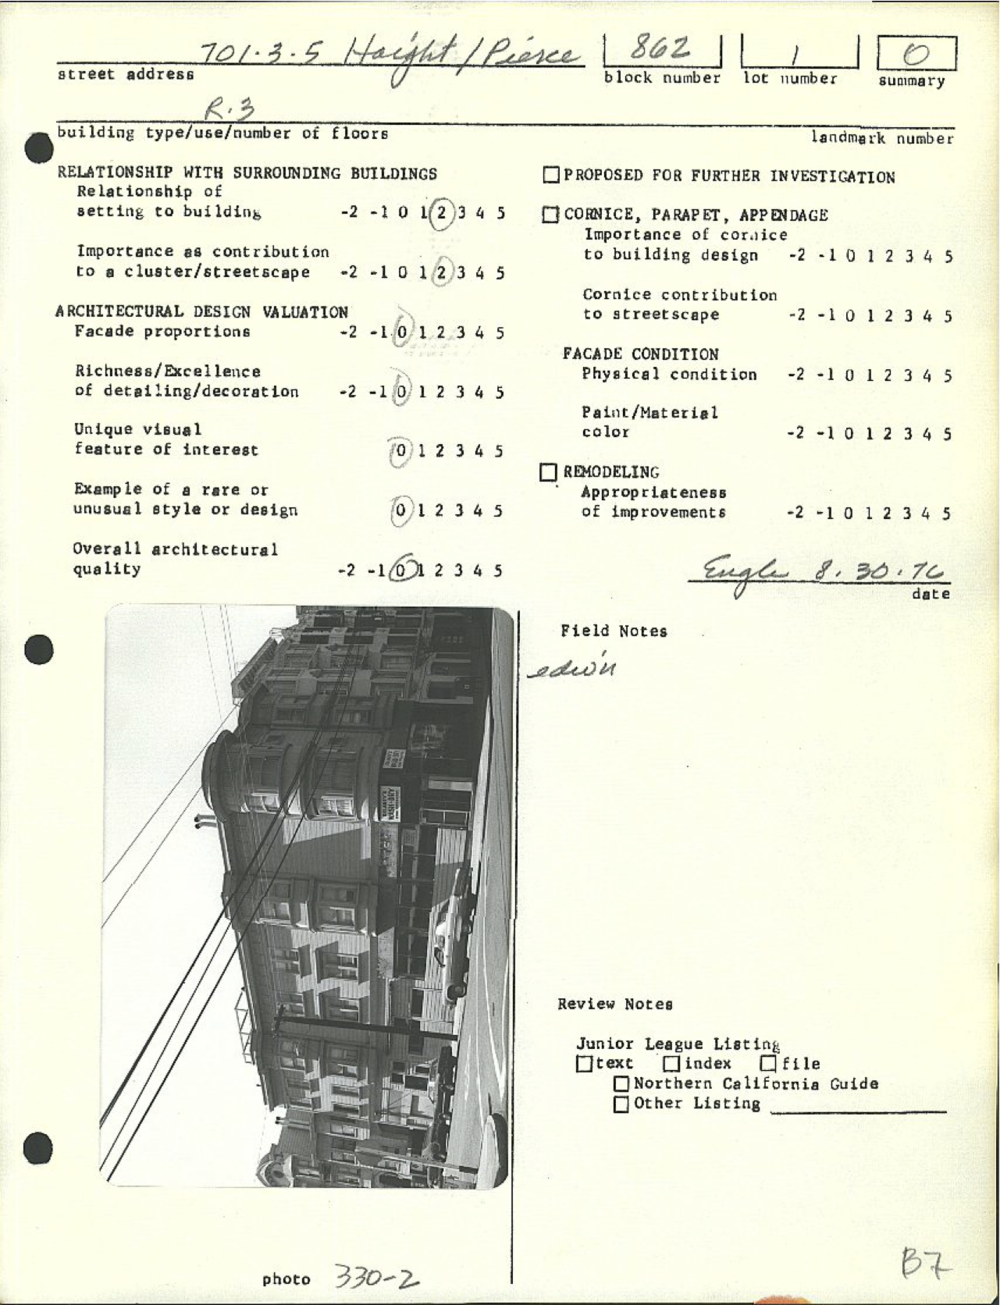 DCP 1976 Land Review Notes